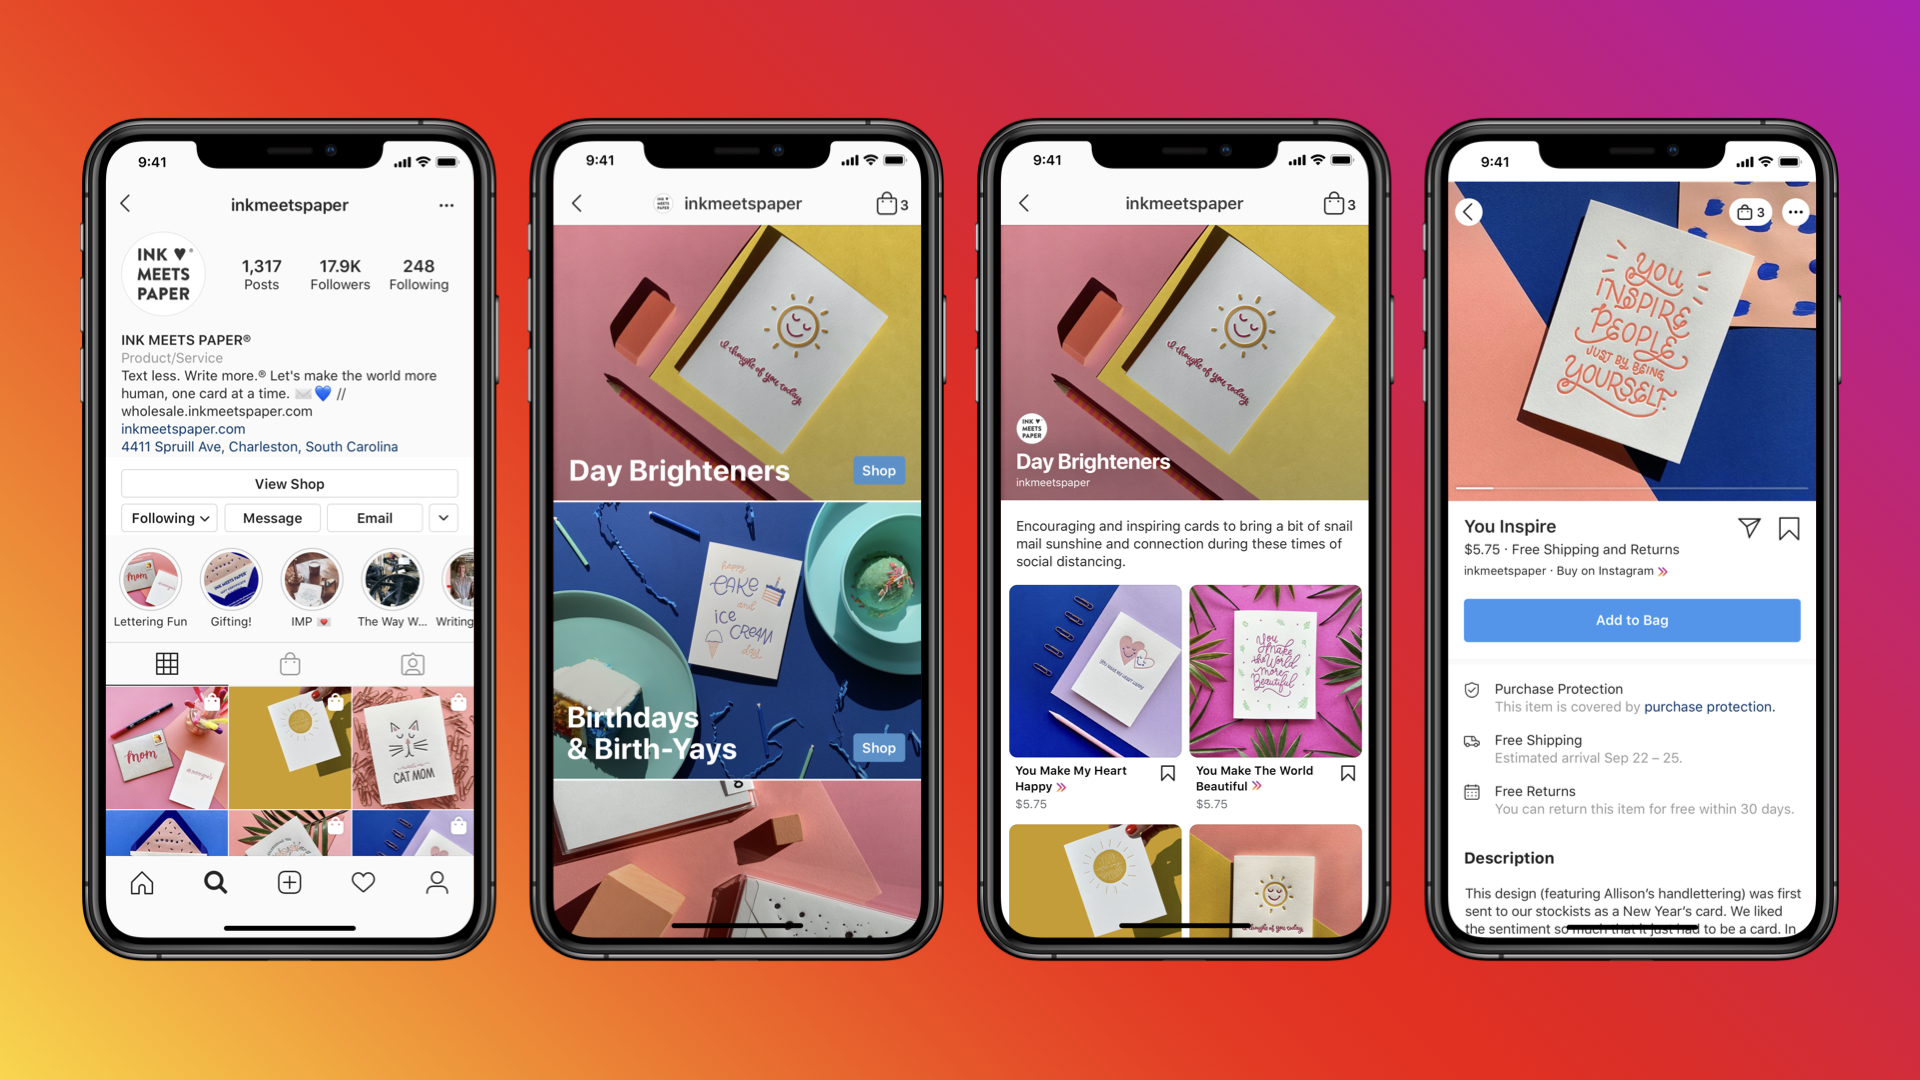 Instagram swaps out its 'Activity' tab for 'Shop' in new global ...